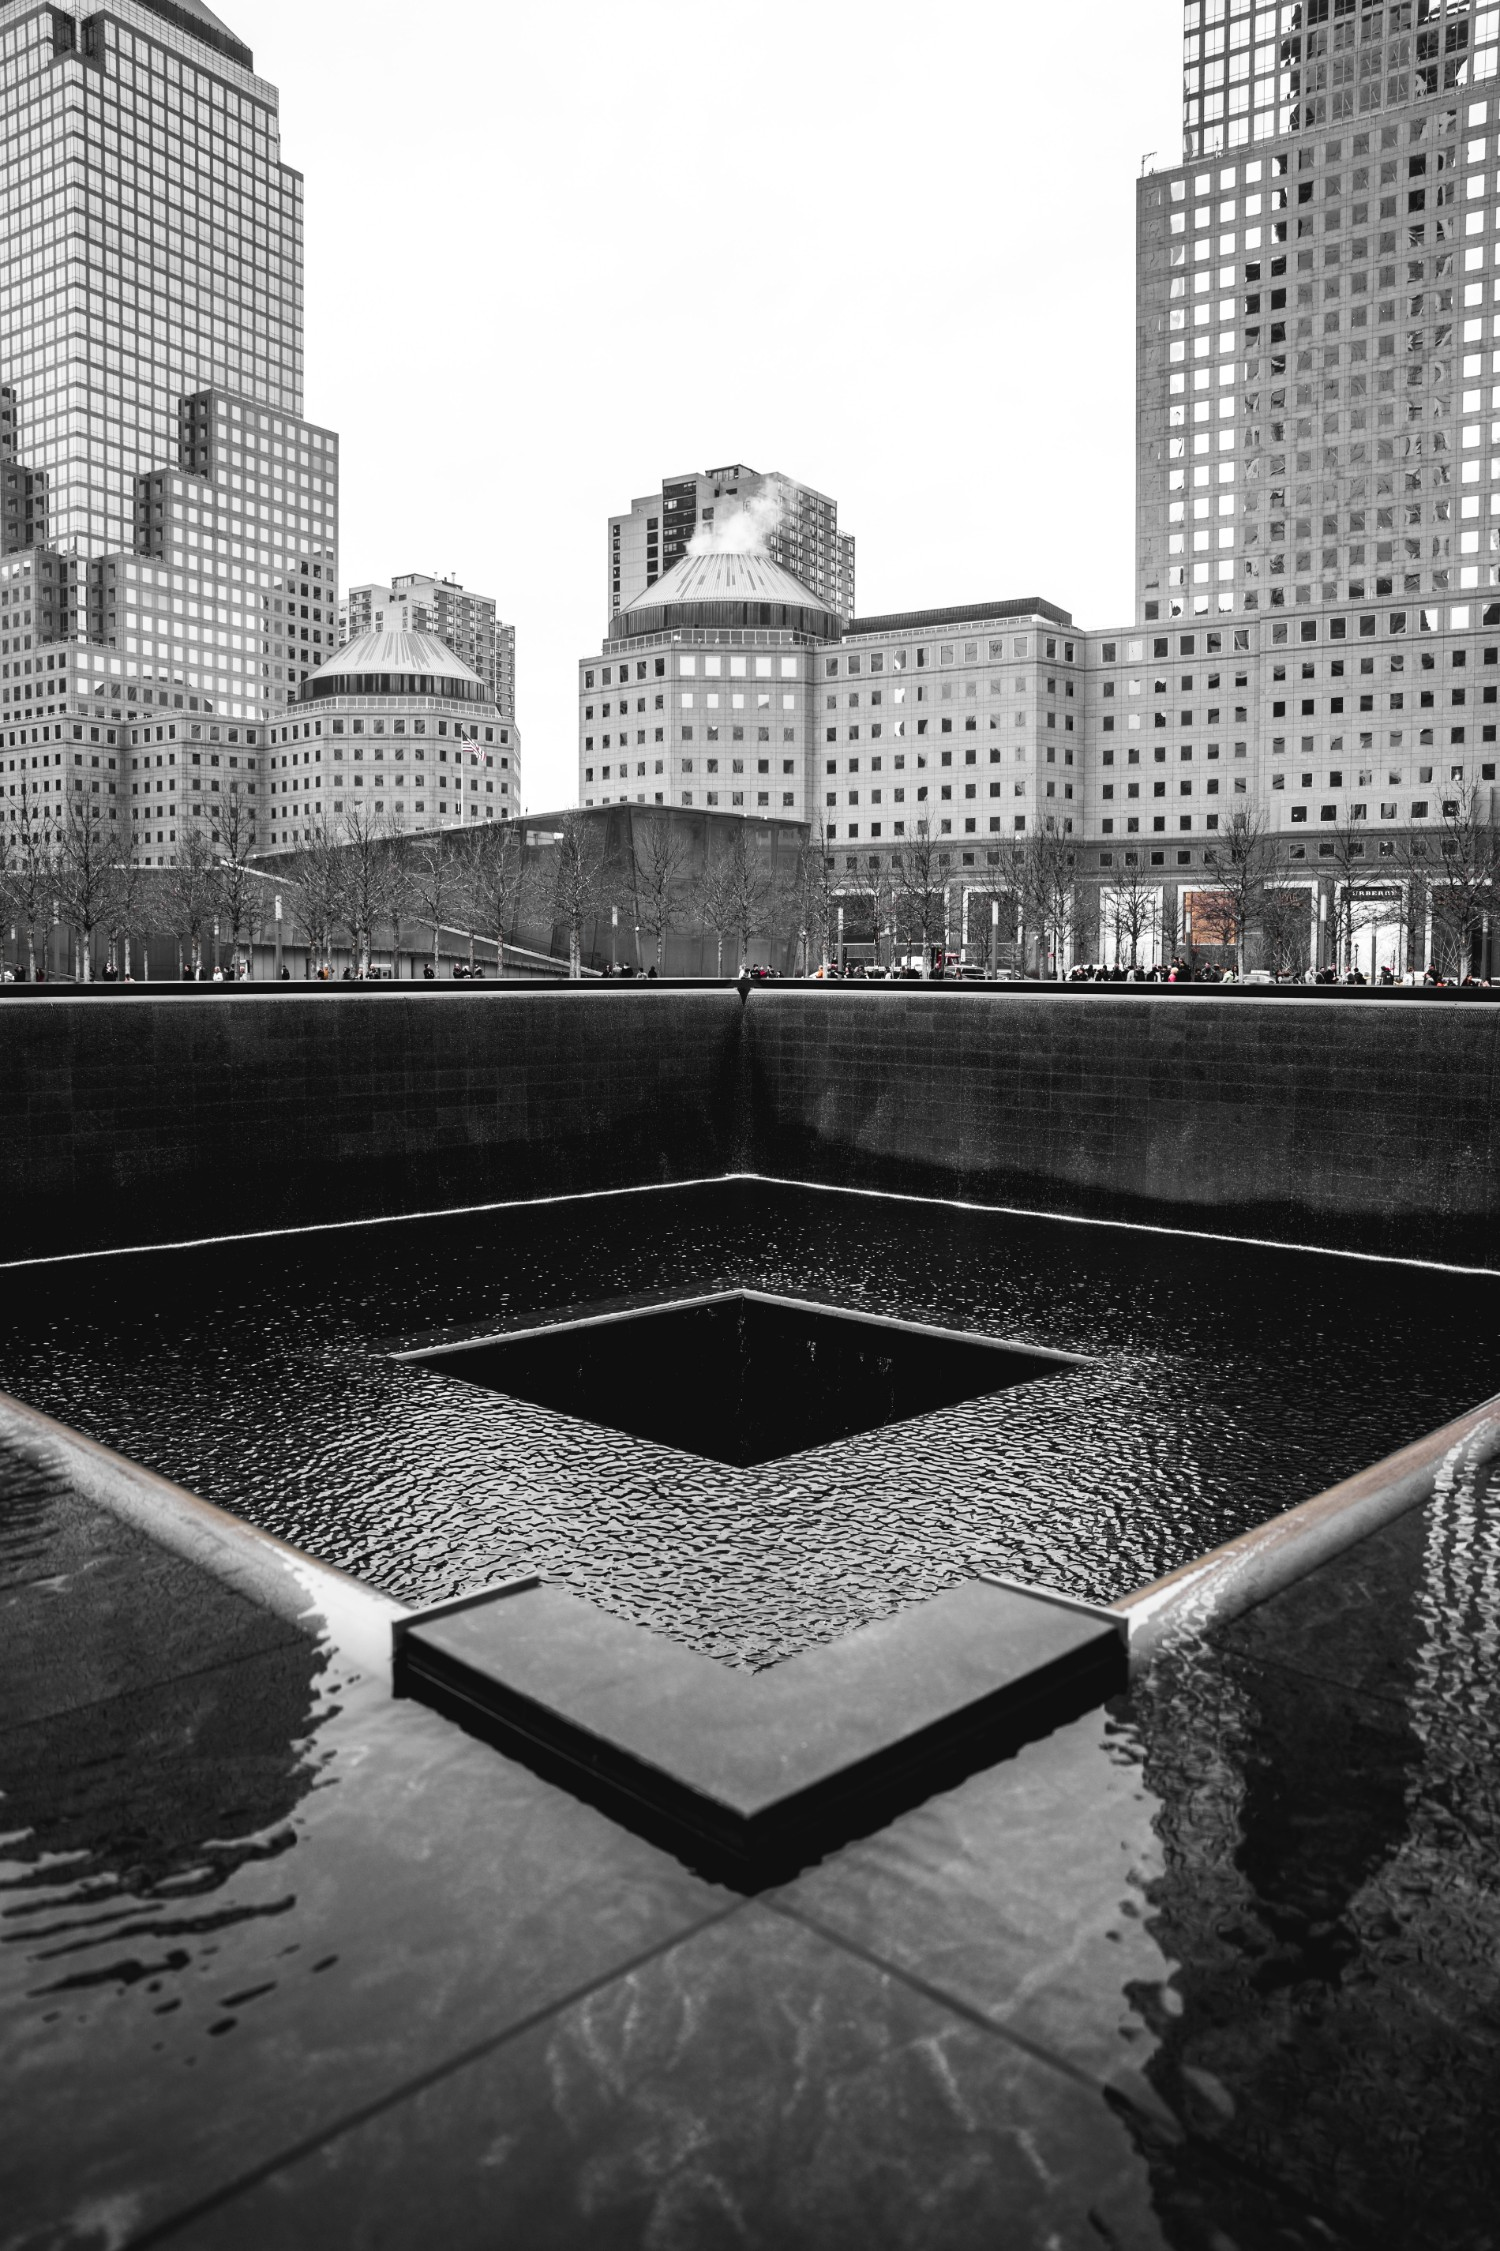 One of the fountains that makes up Reflecting Absence, an art installation at the 9/11 Memorial